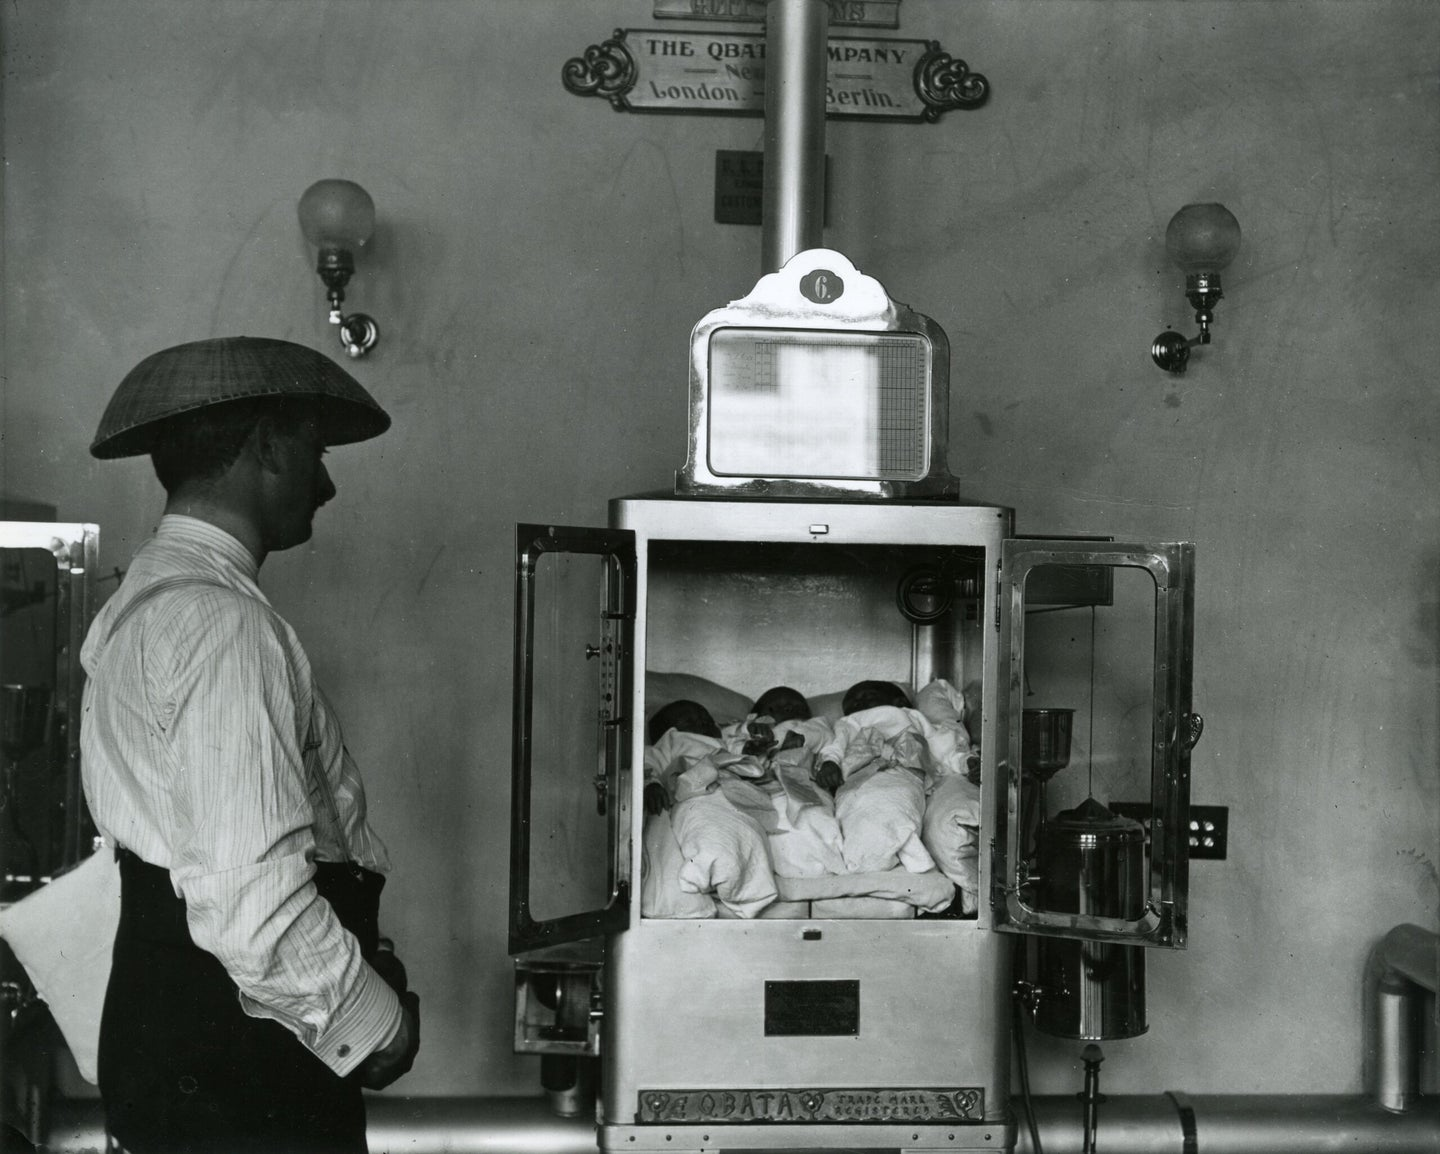 a man looks at several babies in an incubator